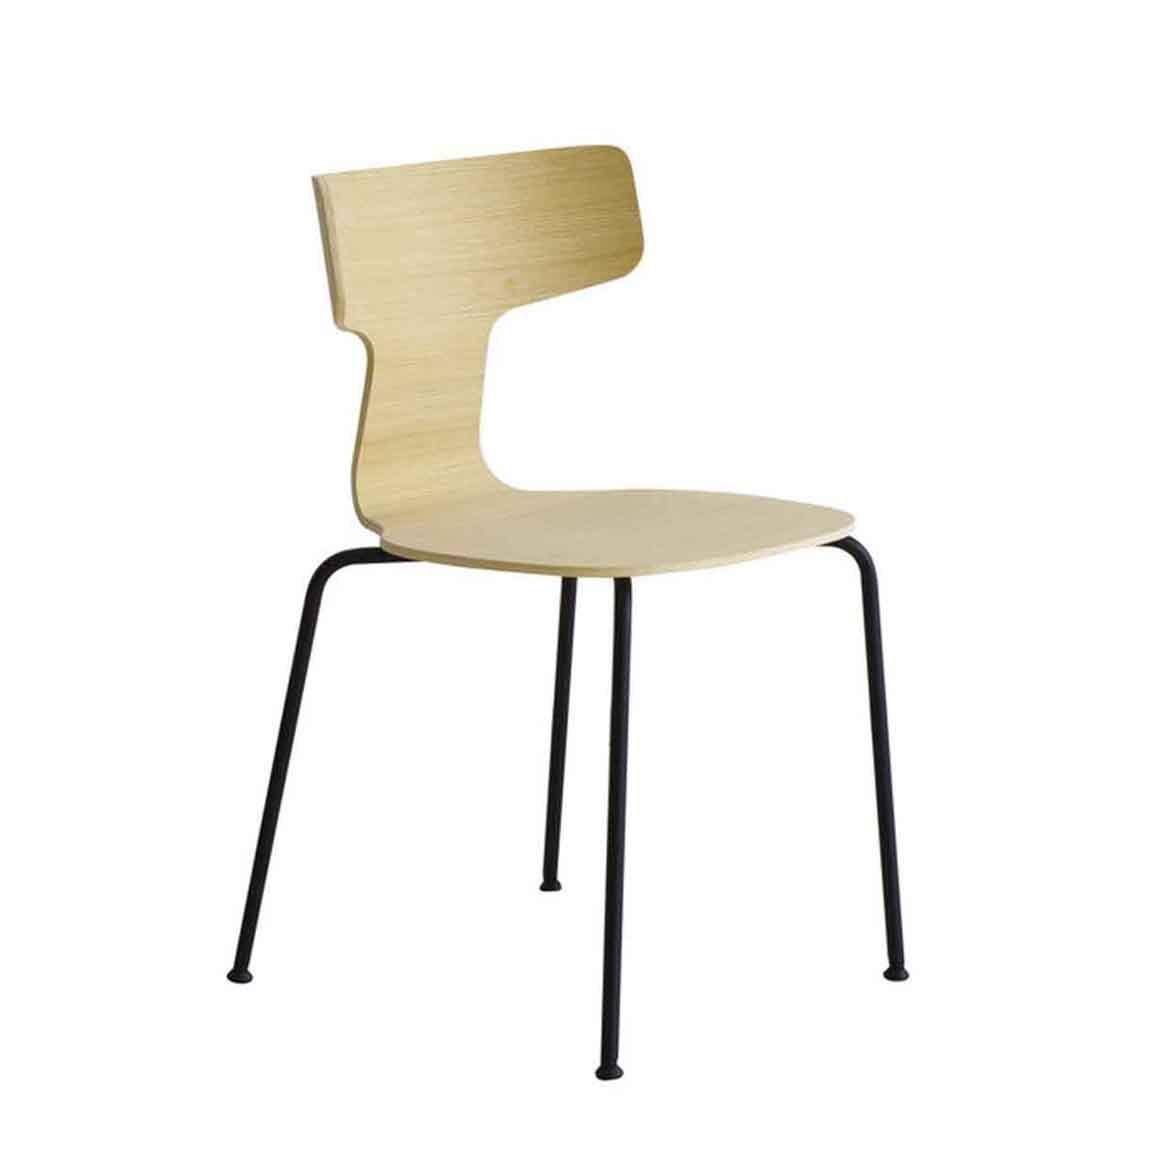 Stackable chair with metal base powder coated or mat chromed. Seat in moulded plywood in several finishes. Also available with wooden legs, not stackable.